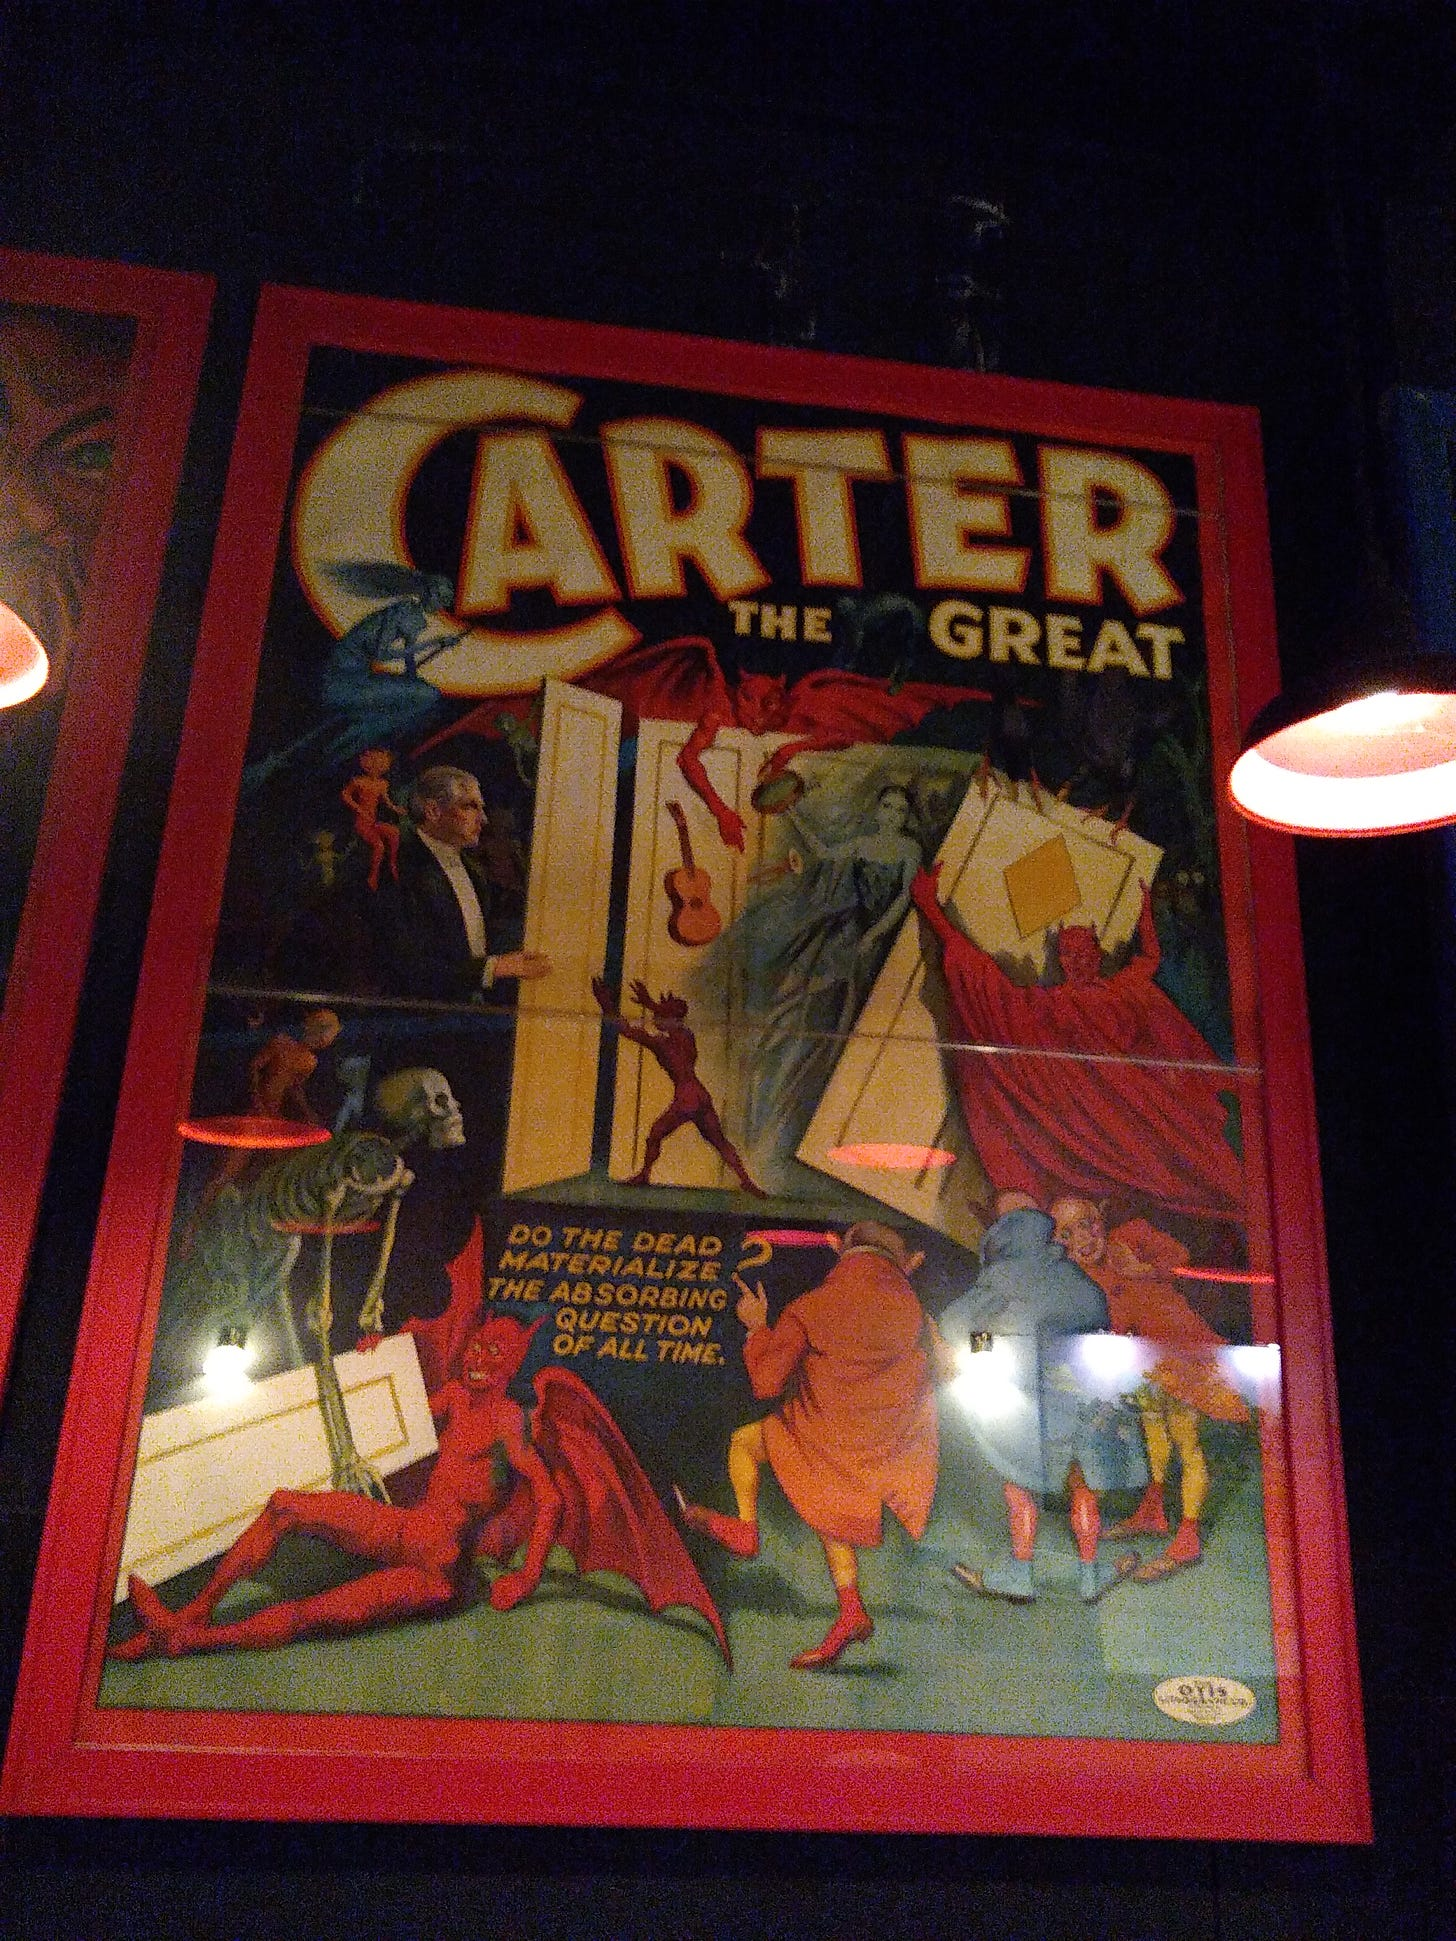 Huge poster for Carter the Great a magician